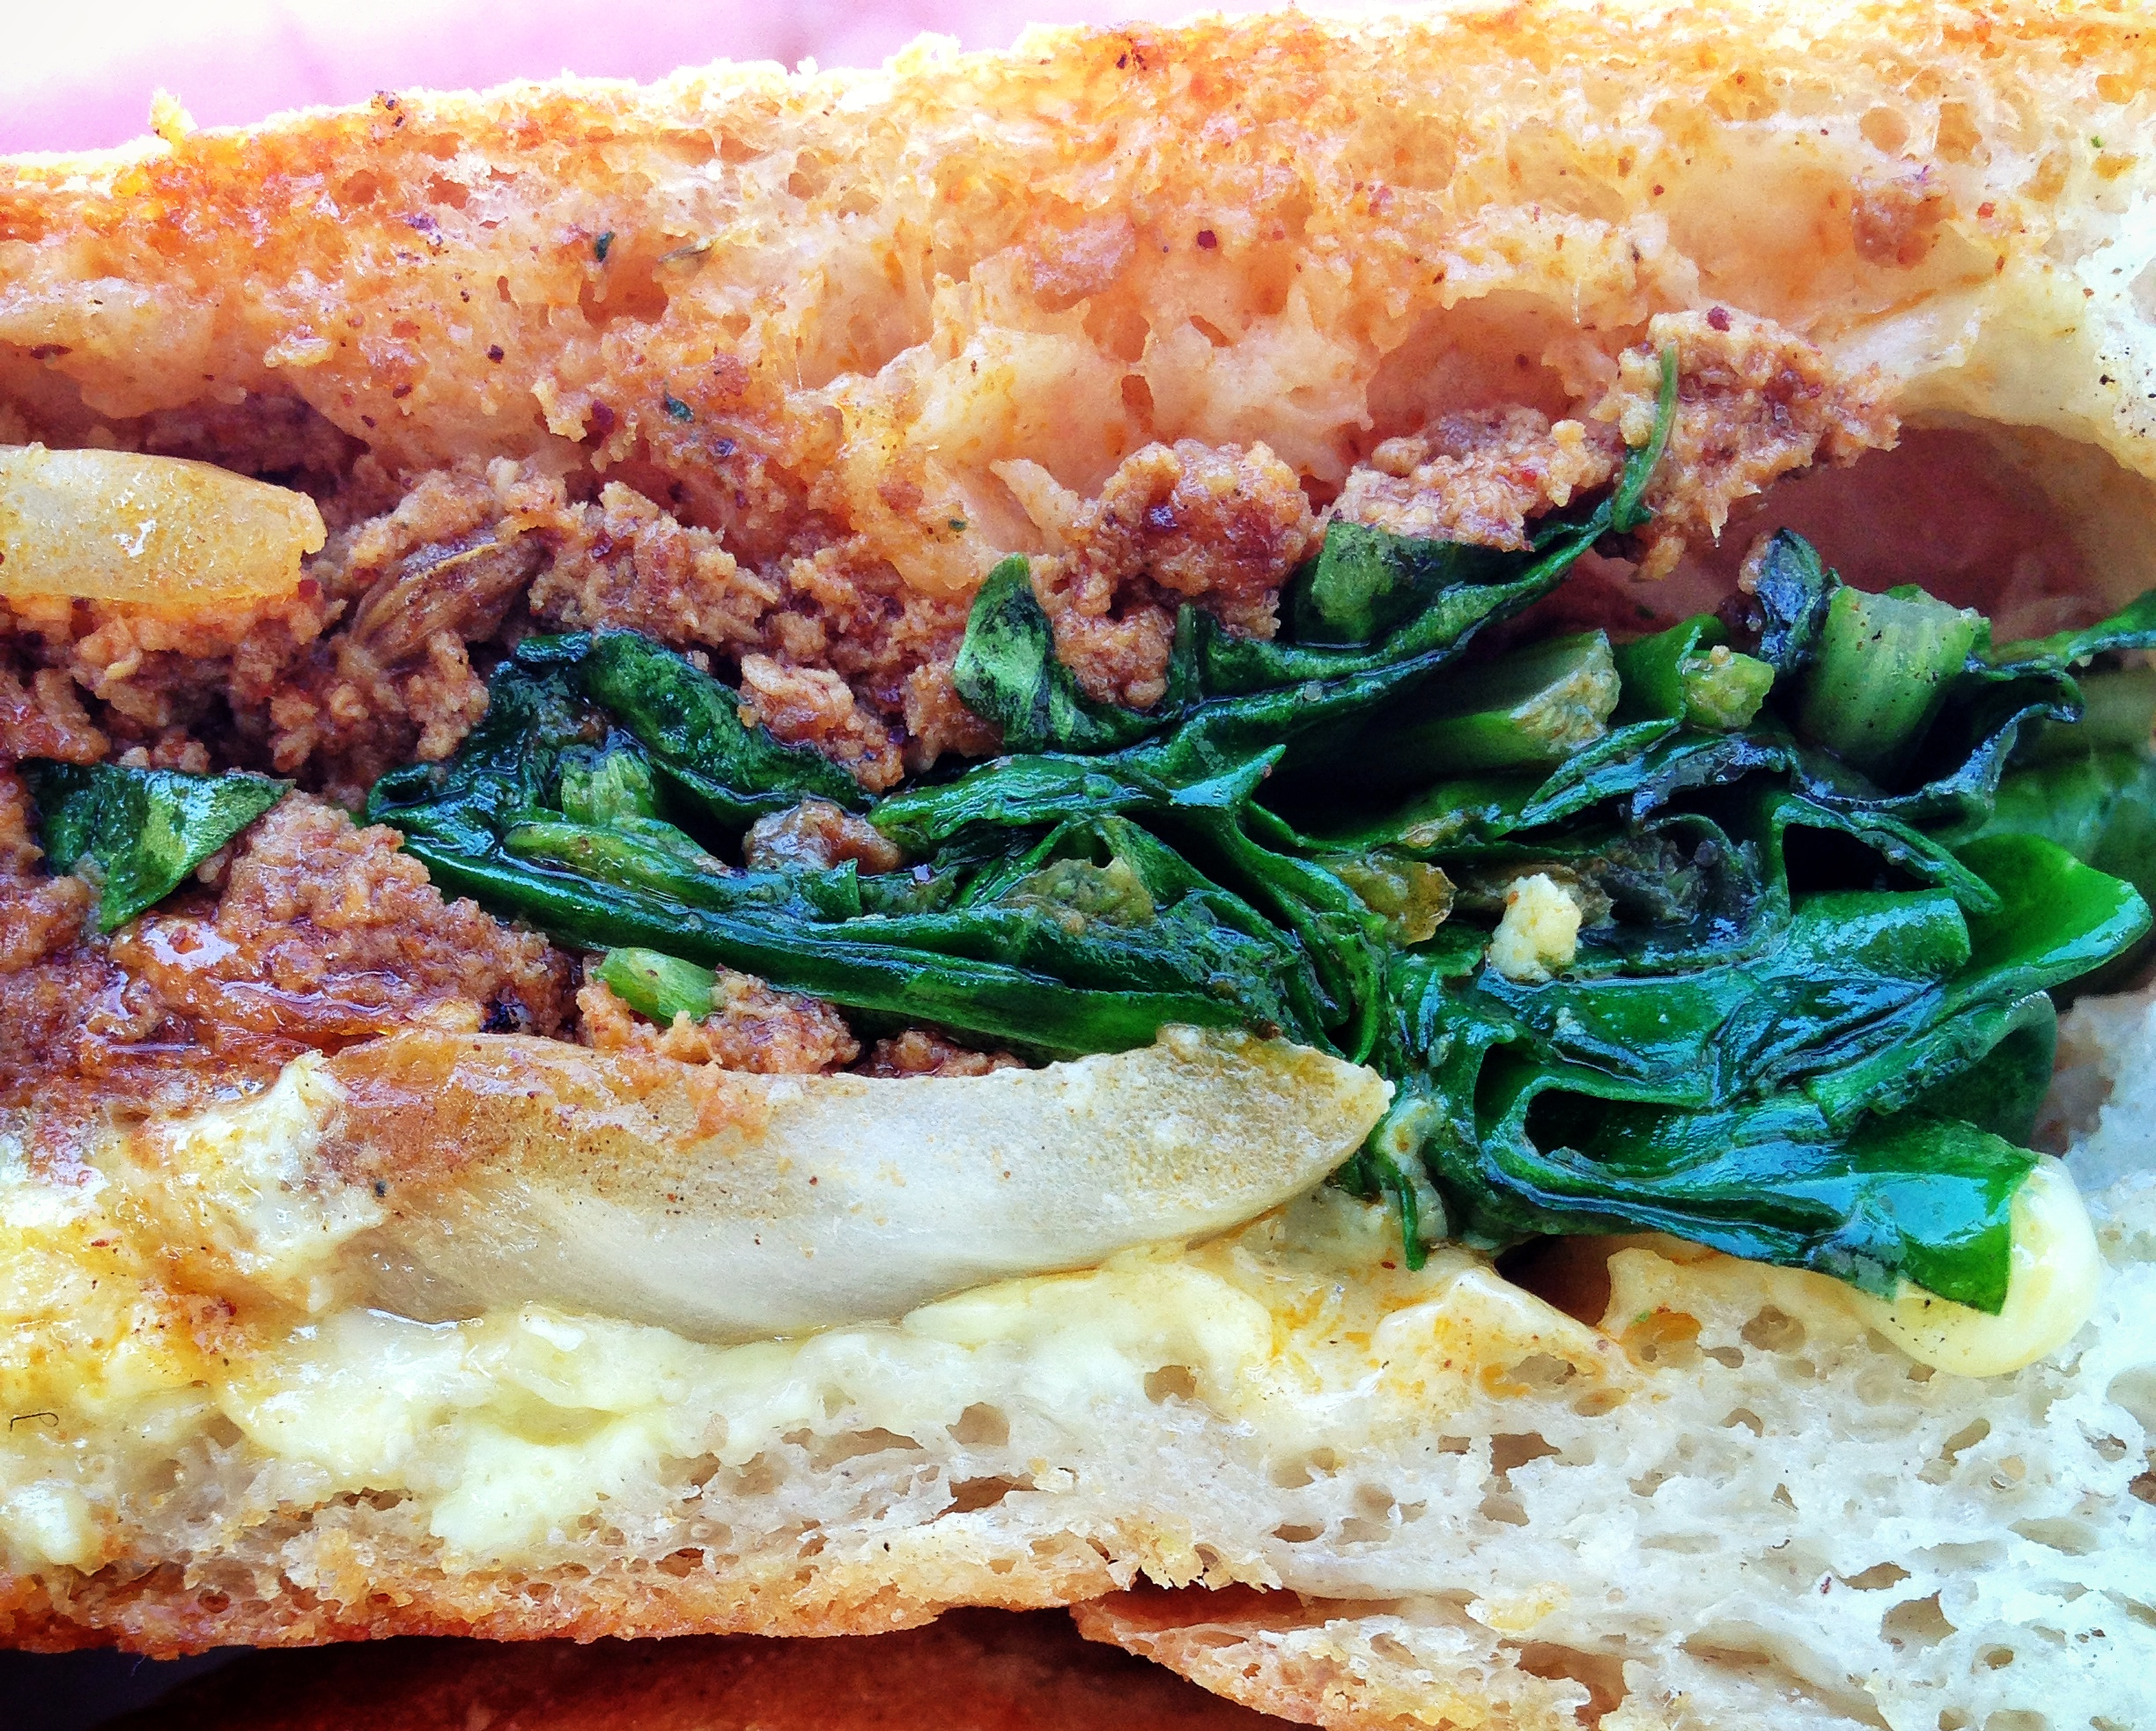 Egg,  chorizo and sauteed greens breakfast sando at Santa Monica farmer's market